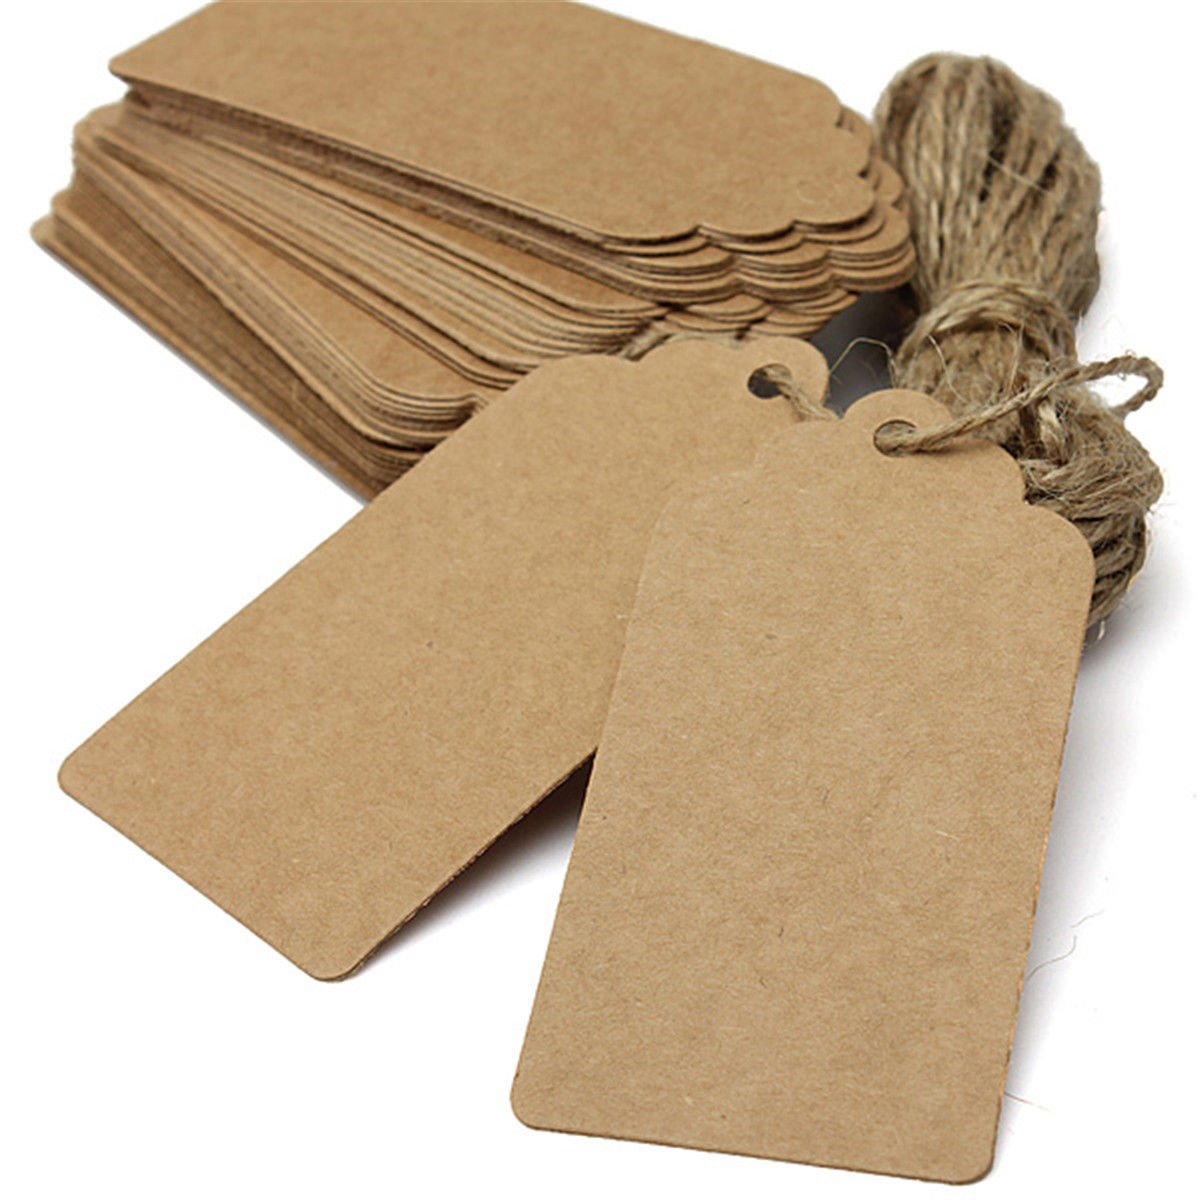 brown kraft paper Results 1 - 48 of 452  100 small kraft brown paper bags 10 x 18cm  for small items  kraft paper  bags are perfect to create, decorate and make special gifts.